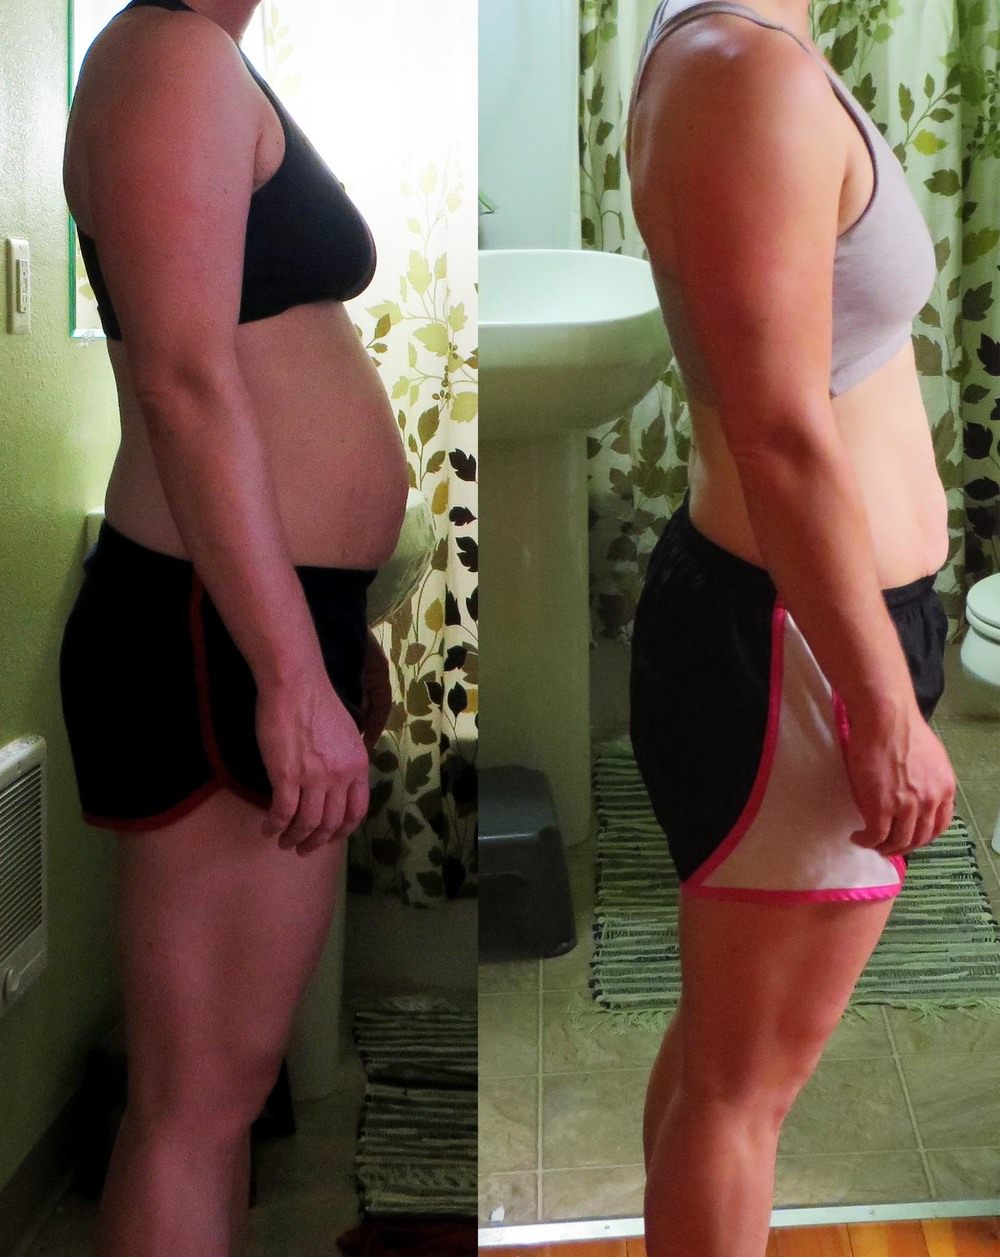 This is Rebecka's 90 day progress photo from when she joined CrossFit Train in Sept '13! Outstanding Rebecka!